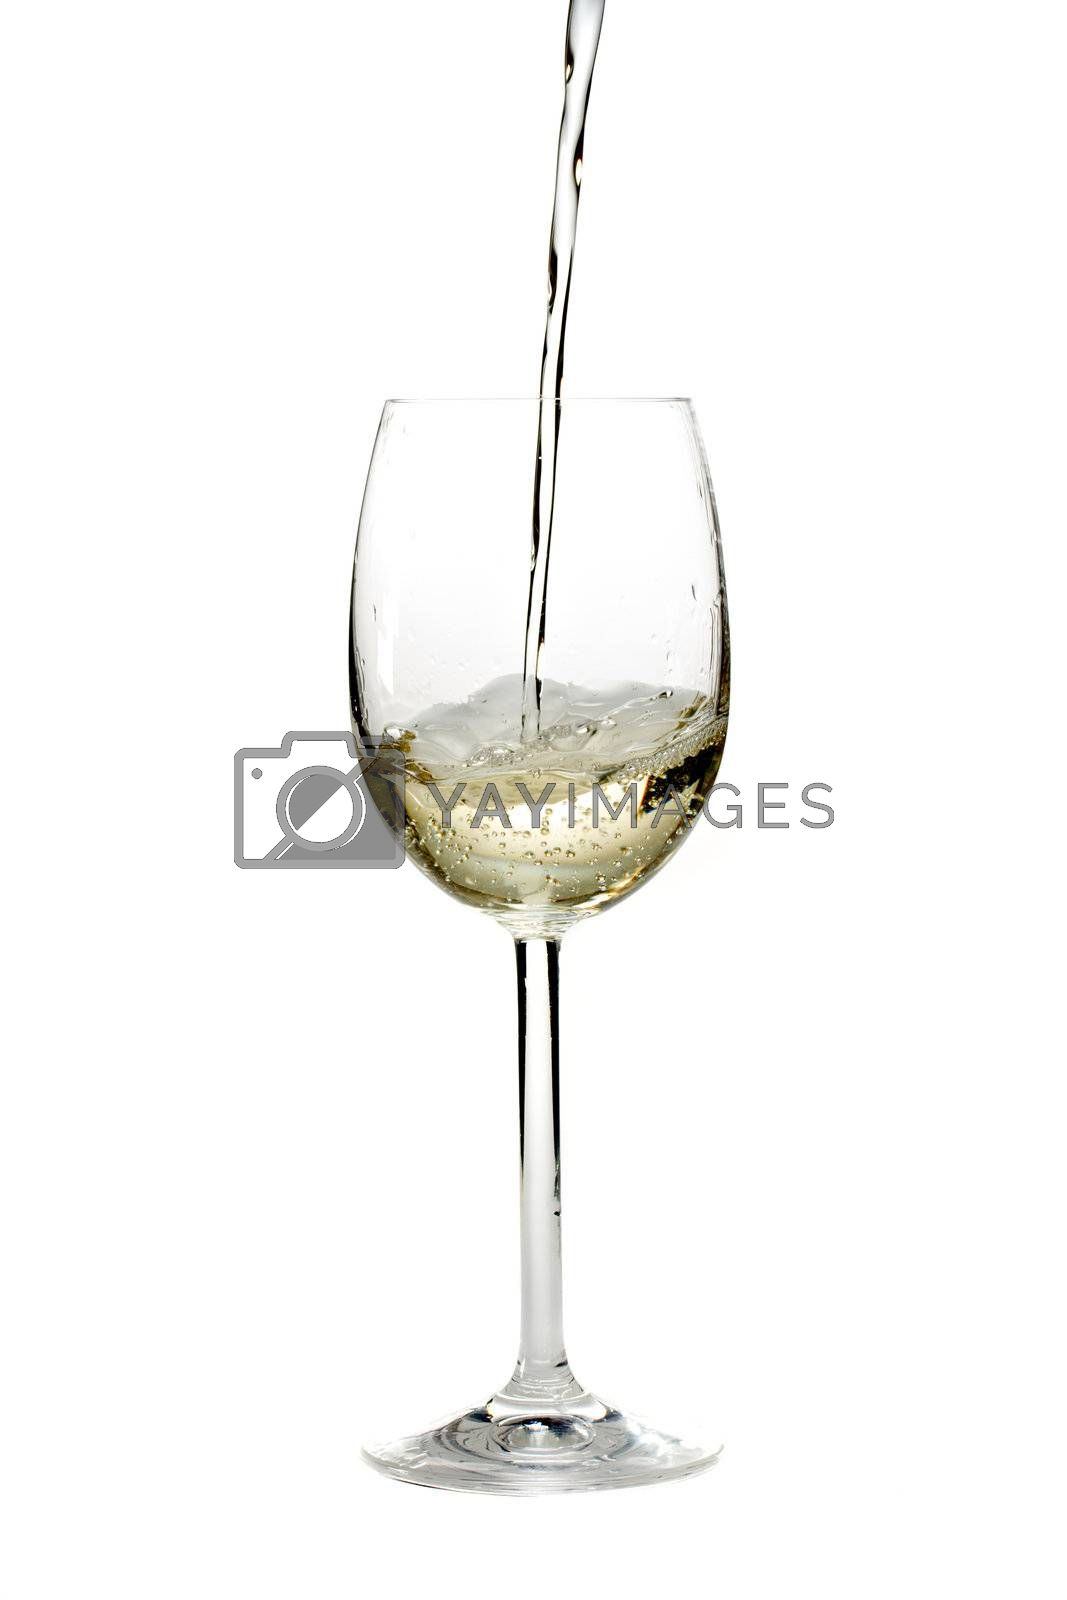 Royalty free image of pouring white wine in a glass over a white background by bernjuer